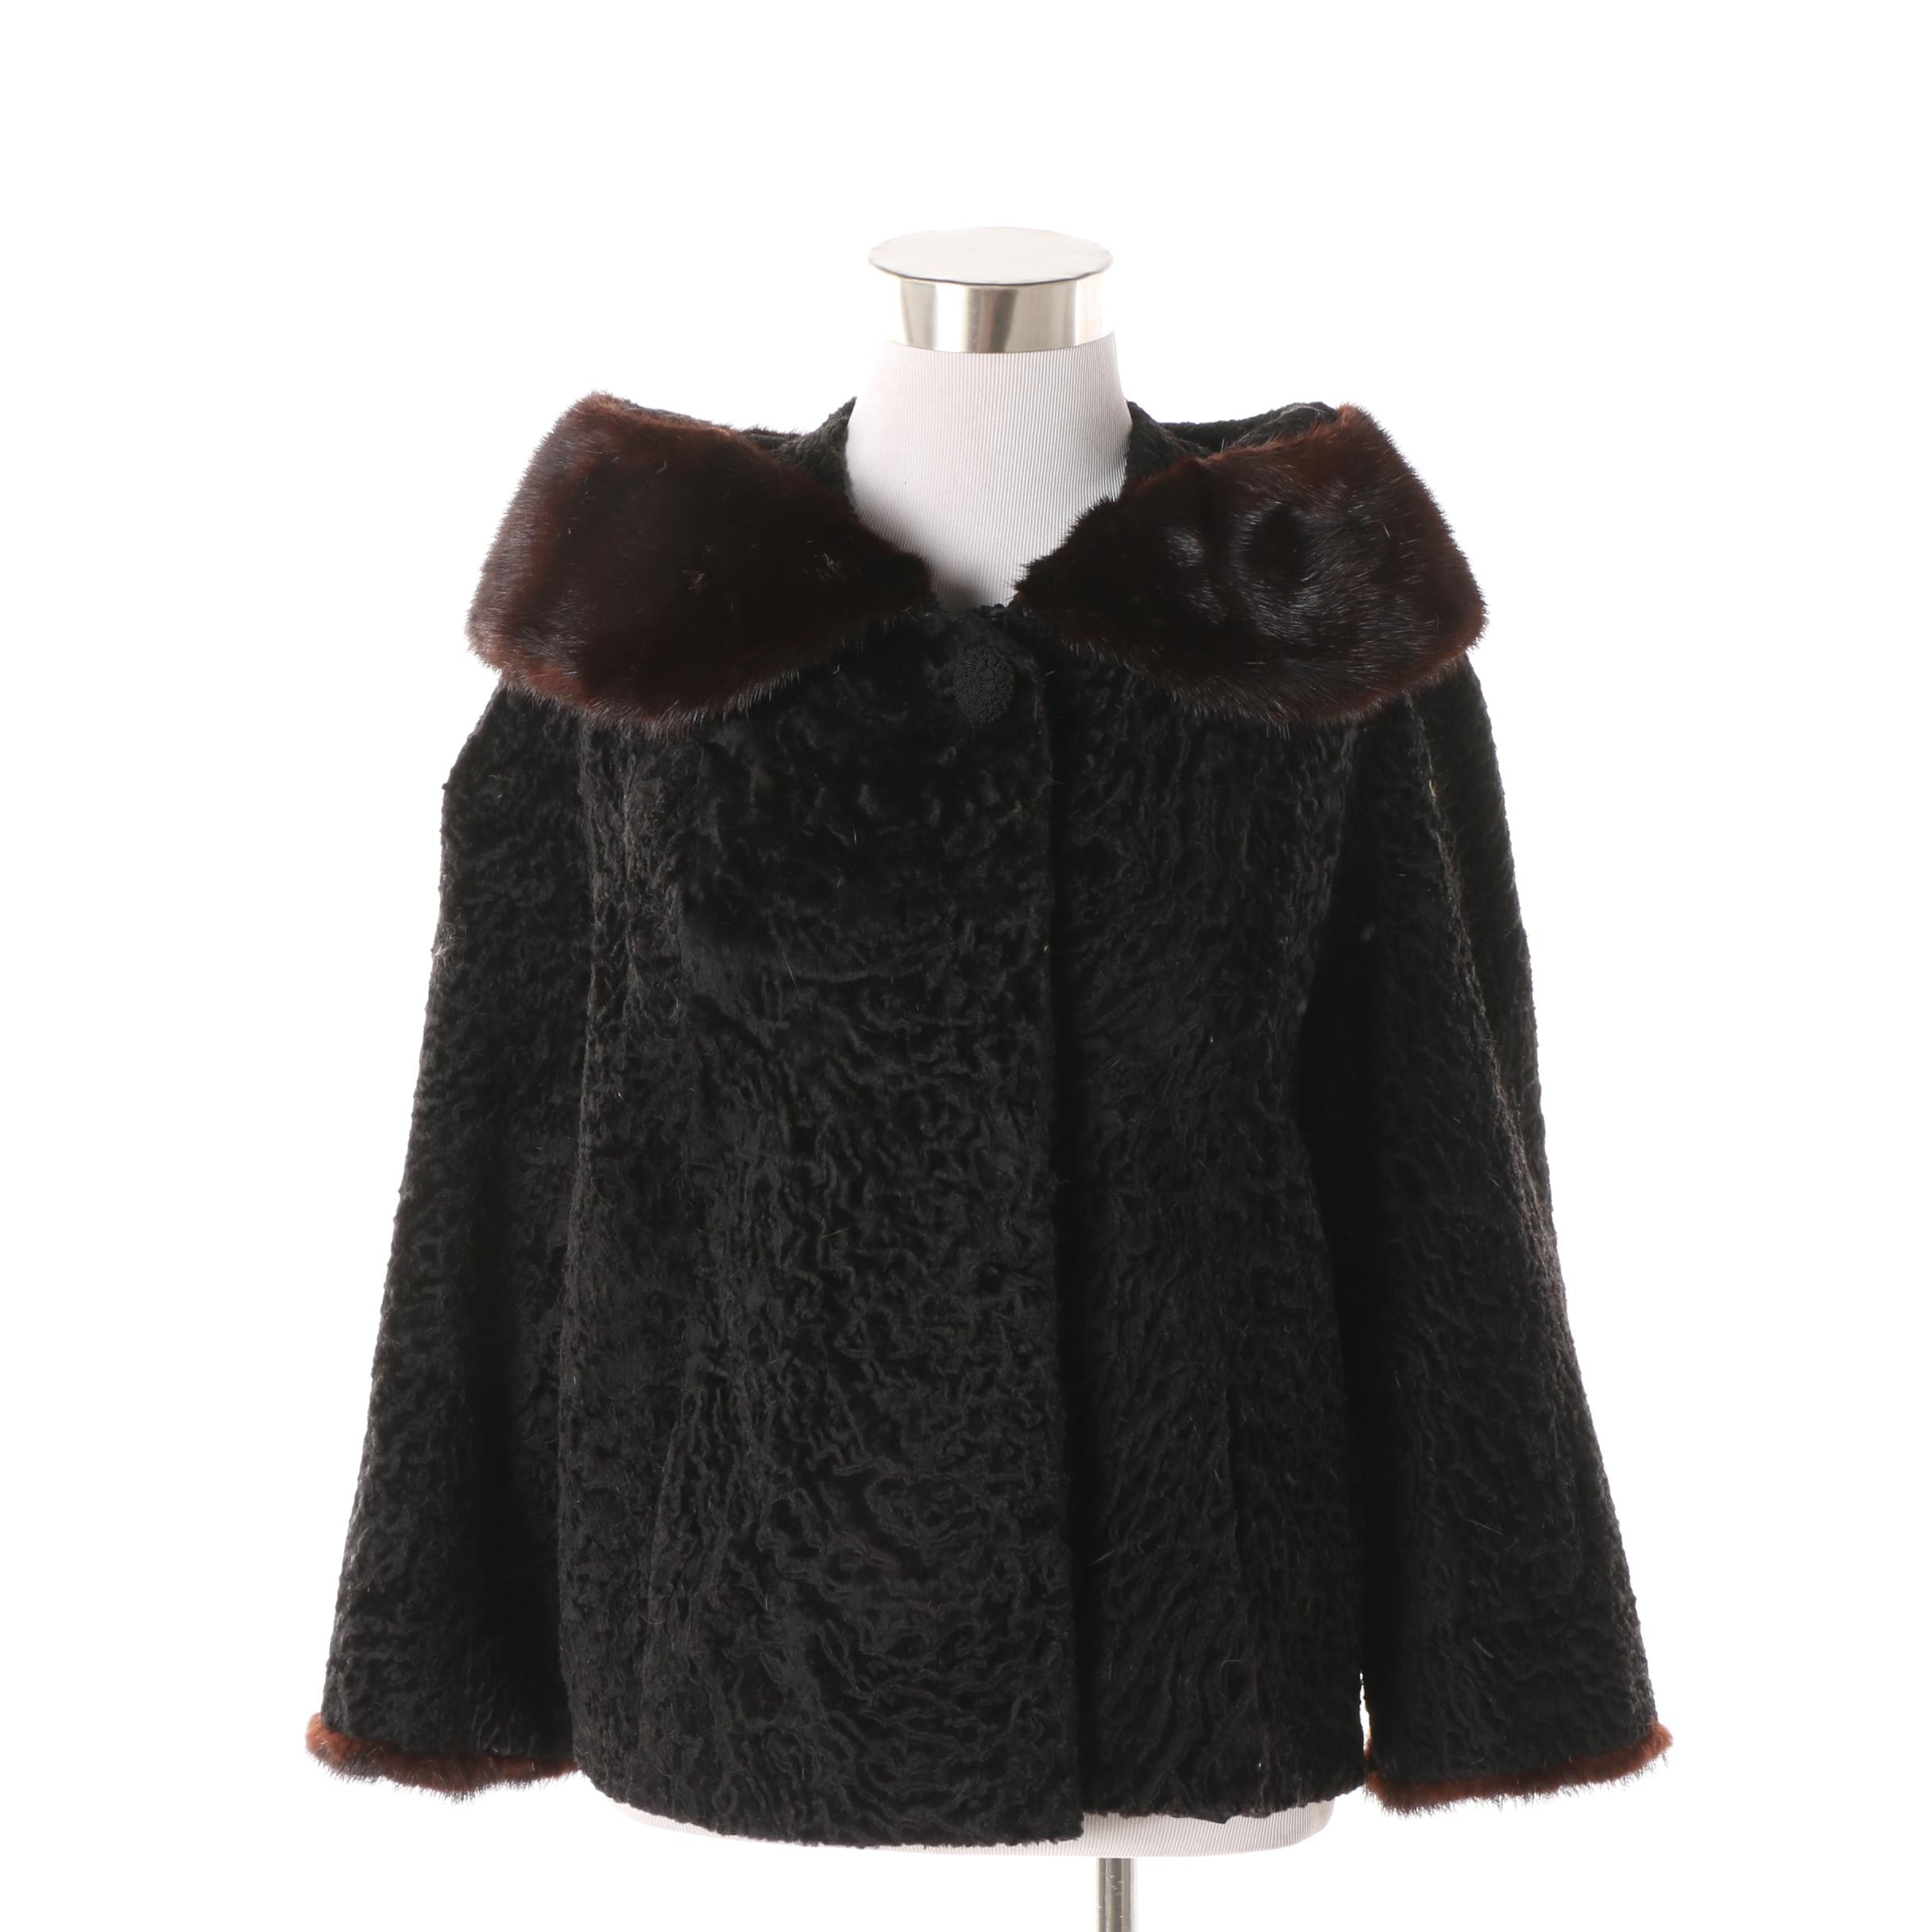 Women's Vintage Bullock's Persian Lamb Fur Coat with Mink Fur Trim